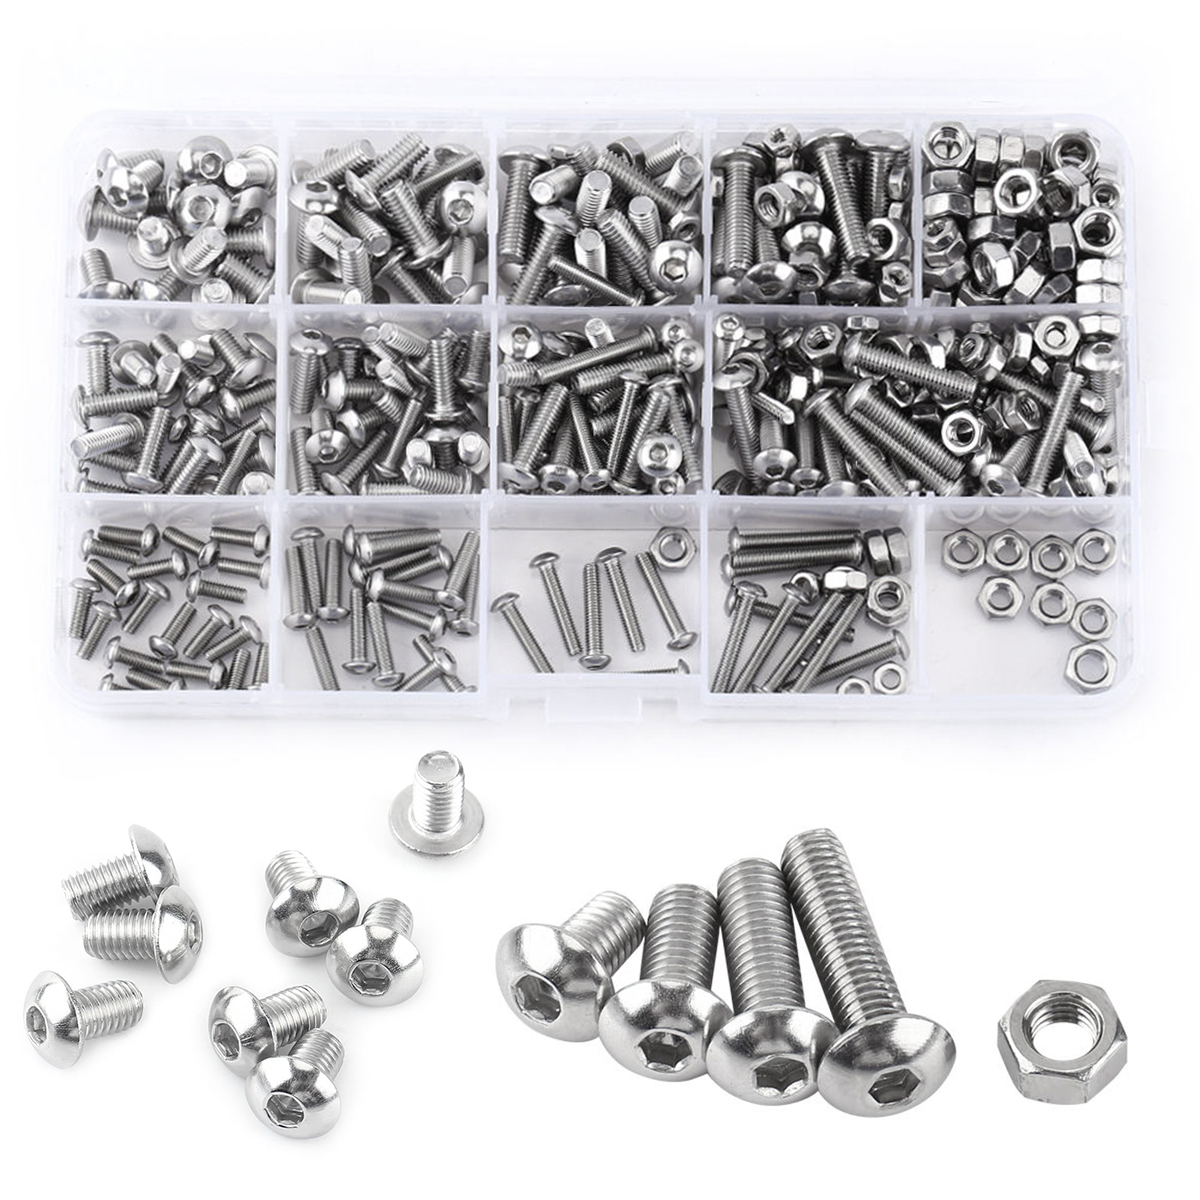 Mayitr 440pcs Stainless Steel Hex Socket Screws Nuts Button Head  M3 M4 M5 Bolts Assortment Kit For Hardware Accessories m3 m4 m5 steel head screws bolts nuts hex socket head cap and nuts assortment button head allen bolts hexagon socket screws kit